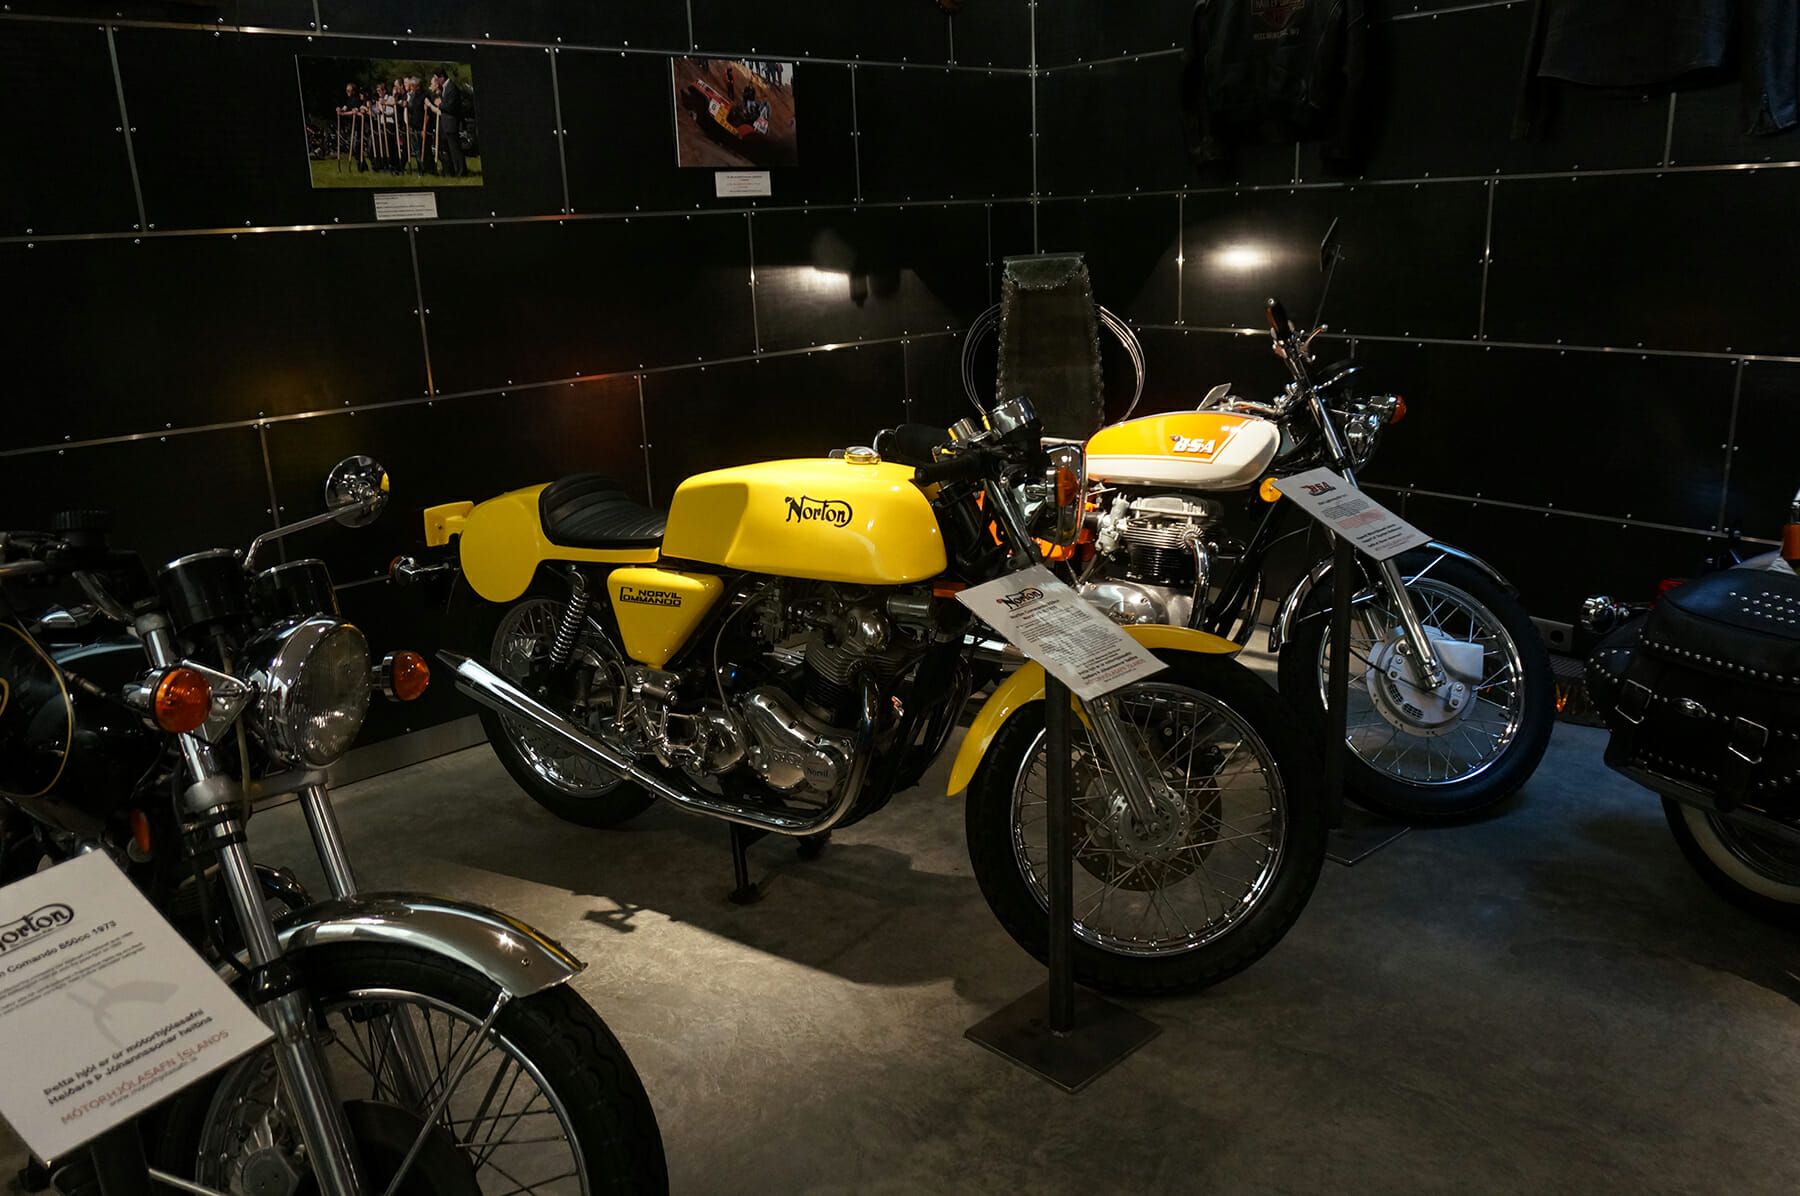 Motorcycle Museum of Iceland